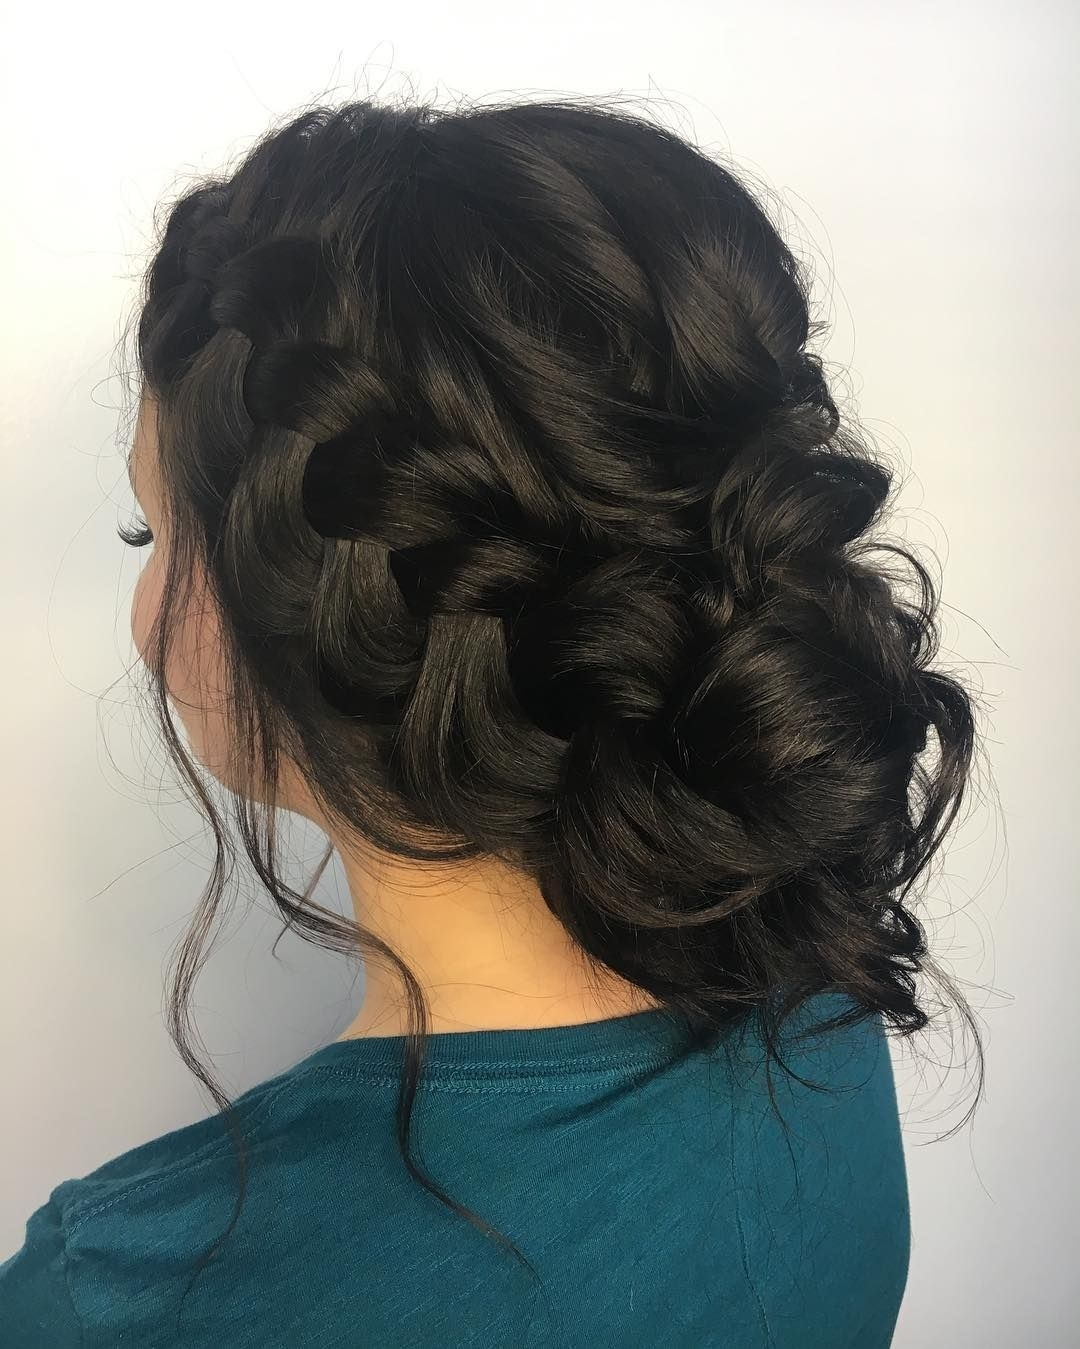 Pin By Daisy On // H A I R . B E A U T Y // In 2019 | Prom Hair Updo throughout Top-drawer Asian Hairstyles For Prom